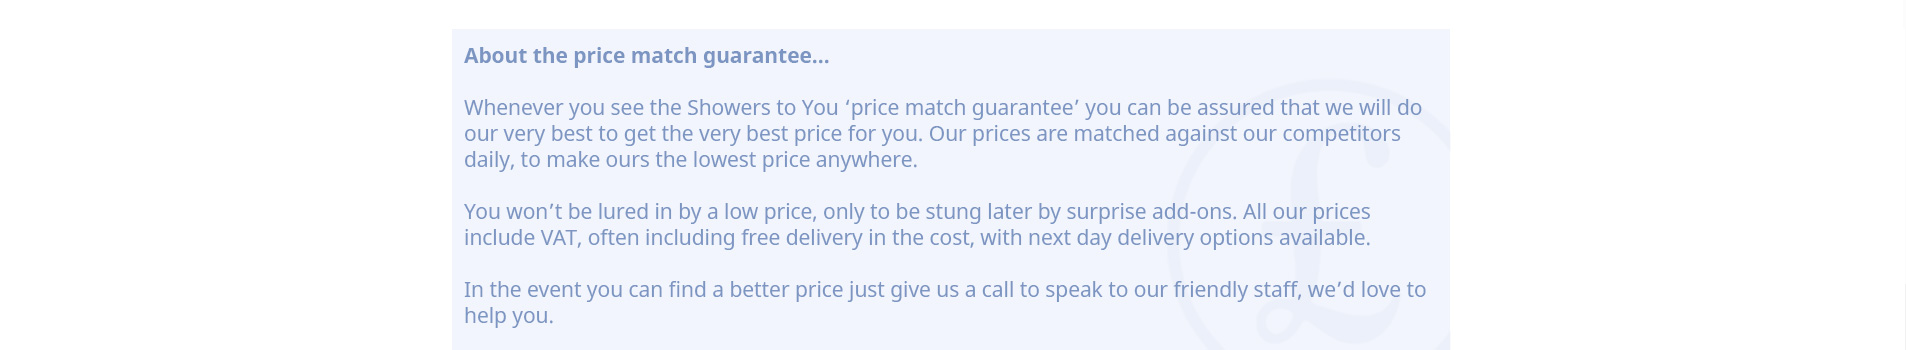 Seen-it-cheaper-Price-match-new-banner-top-page3cropped